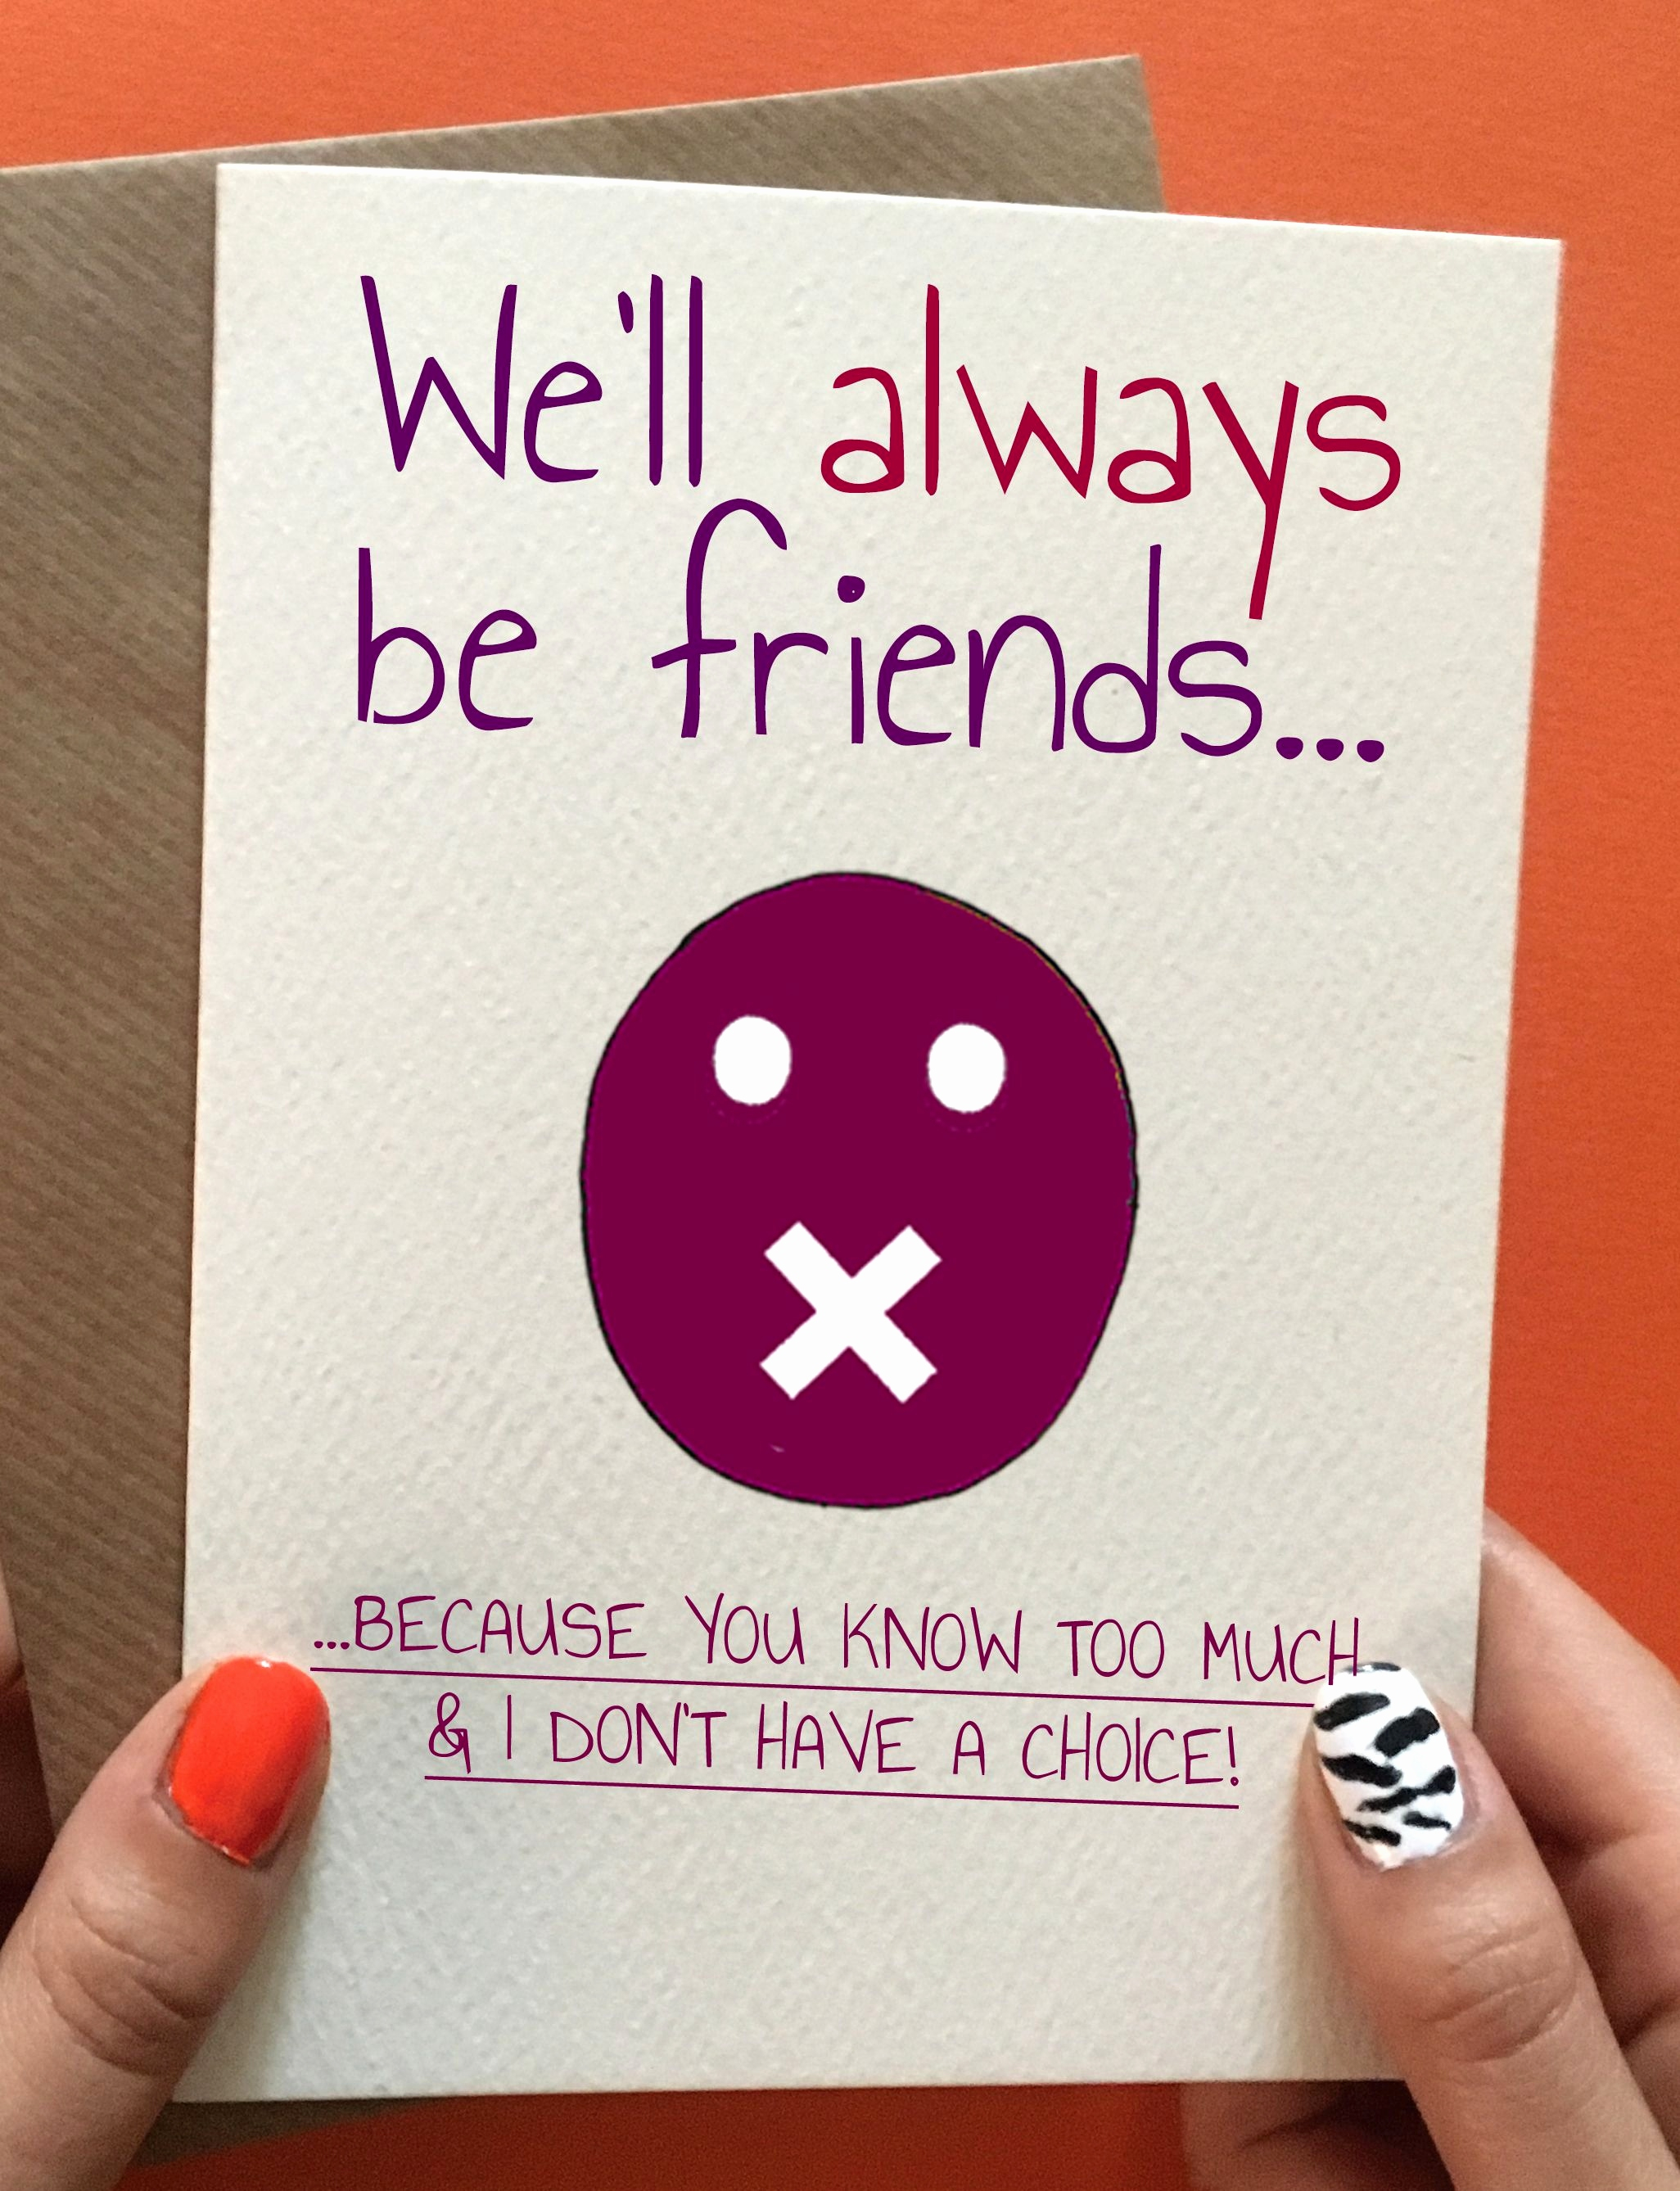 Funny Birthday Card Ideas Funny Birthday Card Ideas For Friends Best Of We Ll Always Be